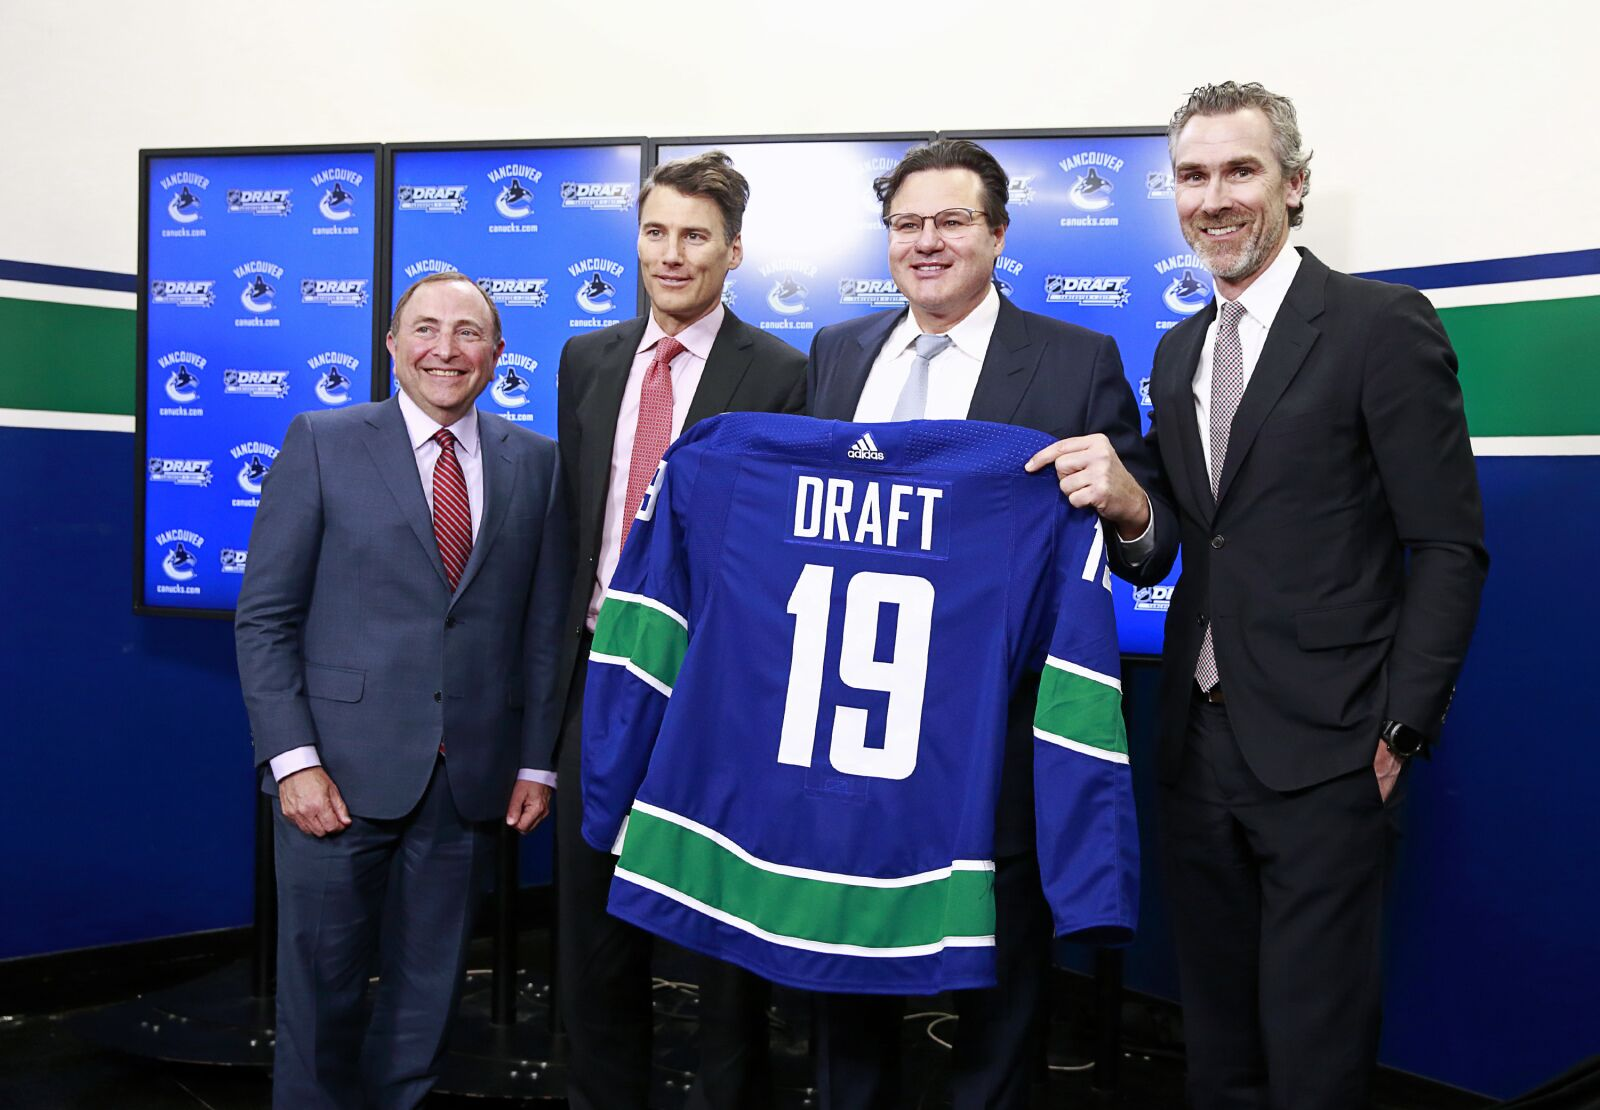 Vegas Golden Knights 2019 NHL Draft: Complete First Round Draft Order